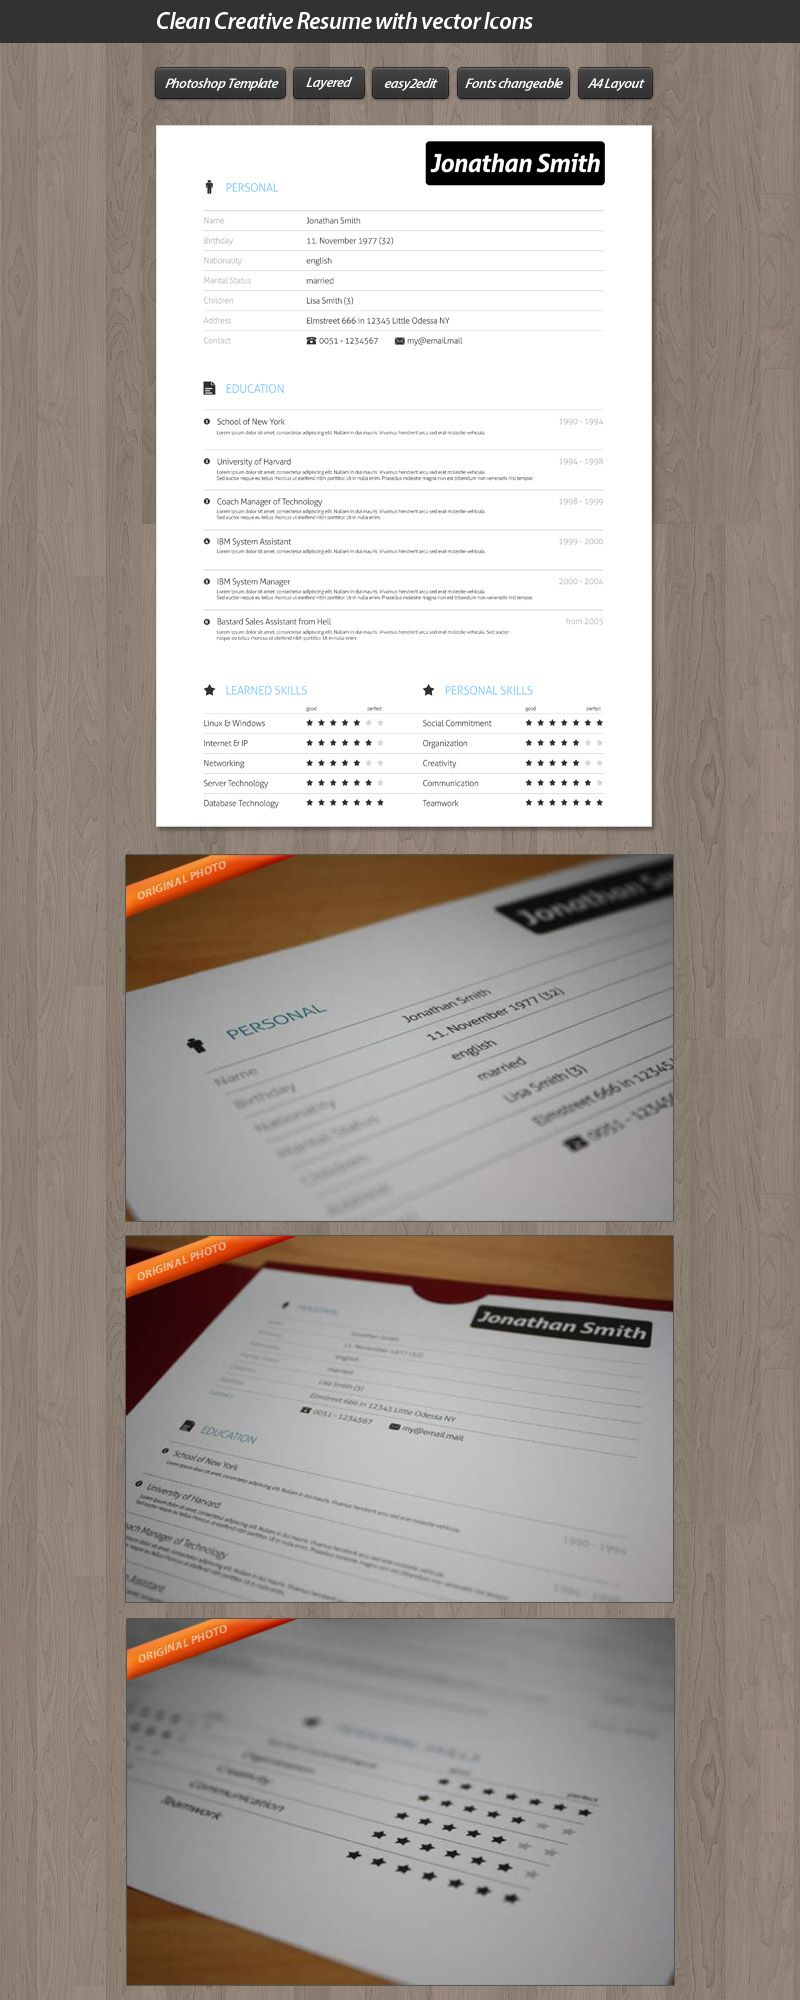 Resume | Graphic Design - Inspiration | Pinterest | Currículum y ...